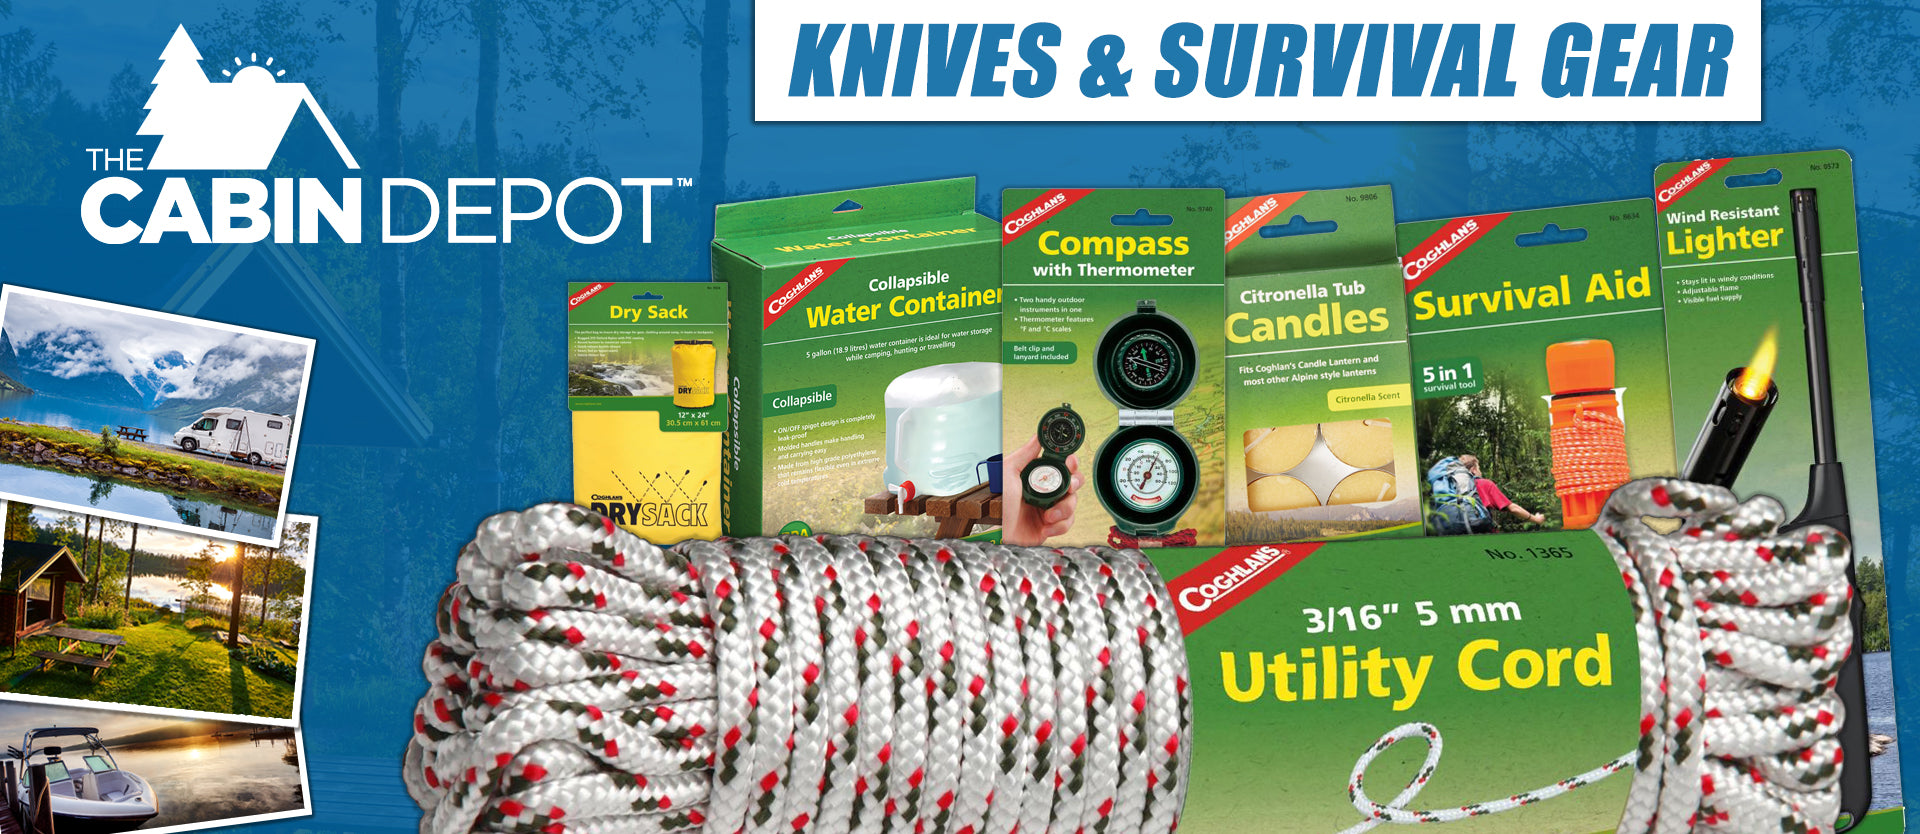 Knives Survival Gear Camping Off Grid The Cabin Depot ™ Canada